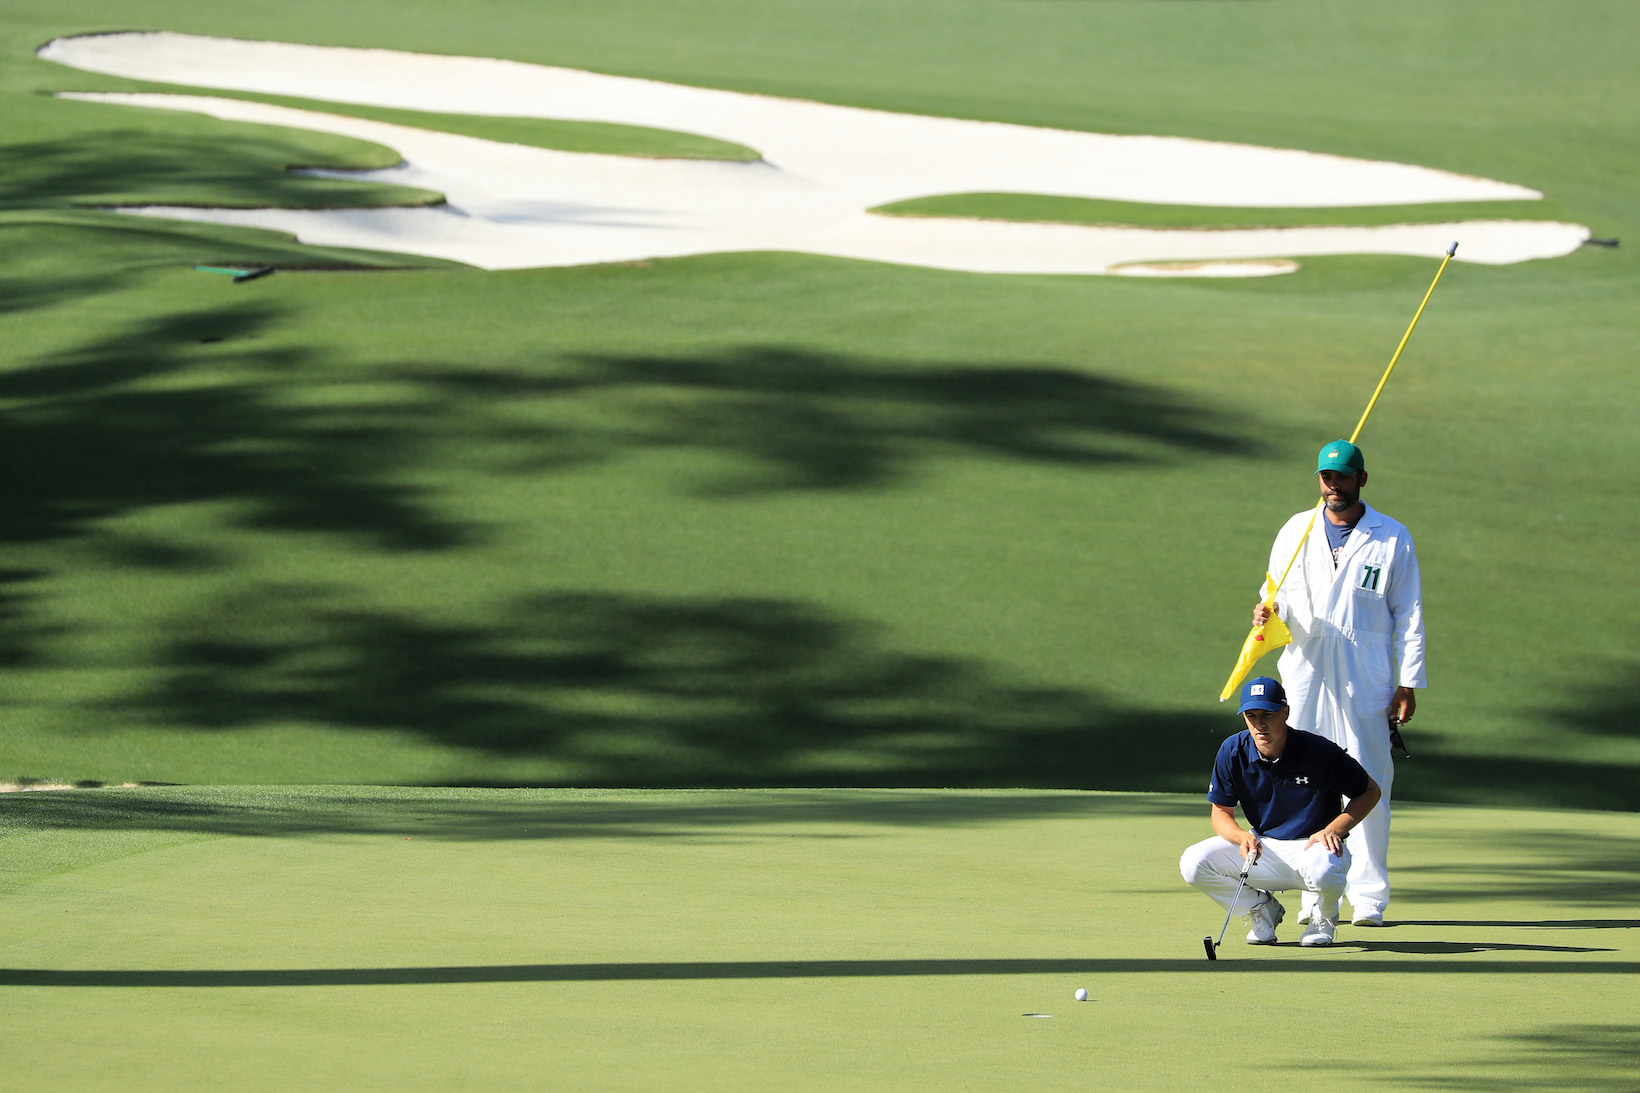 2018 Masters Tournament: Round 1 - Lining Up a Putt on No. 10